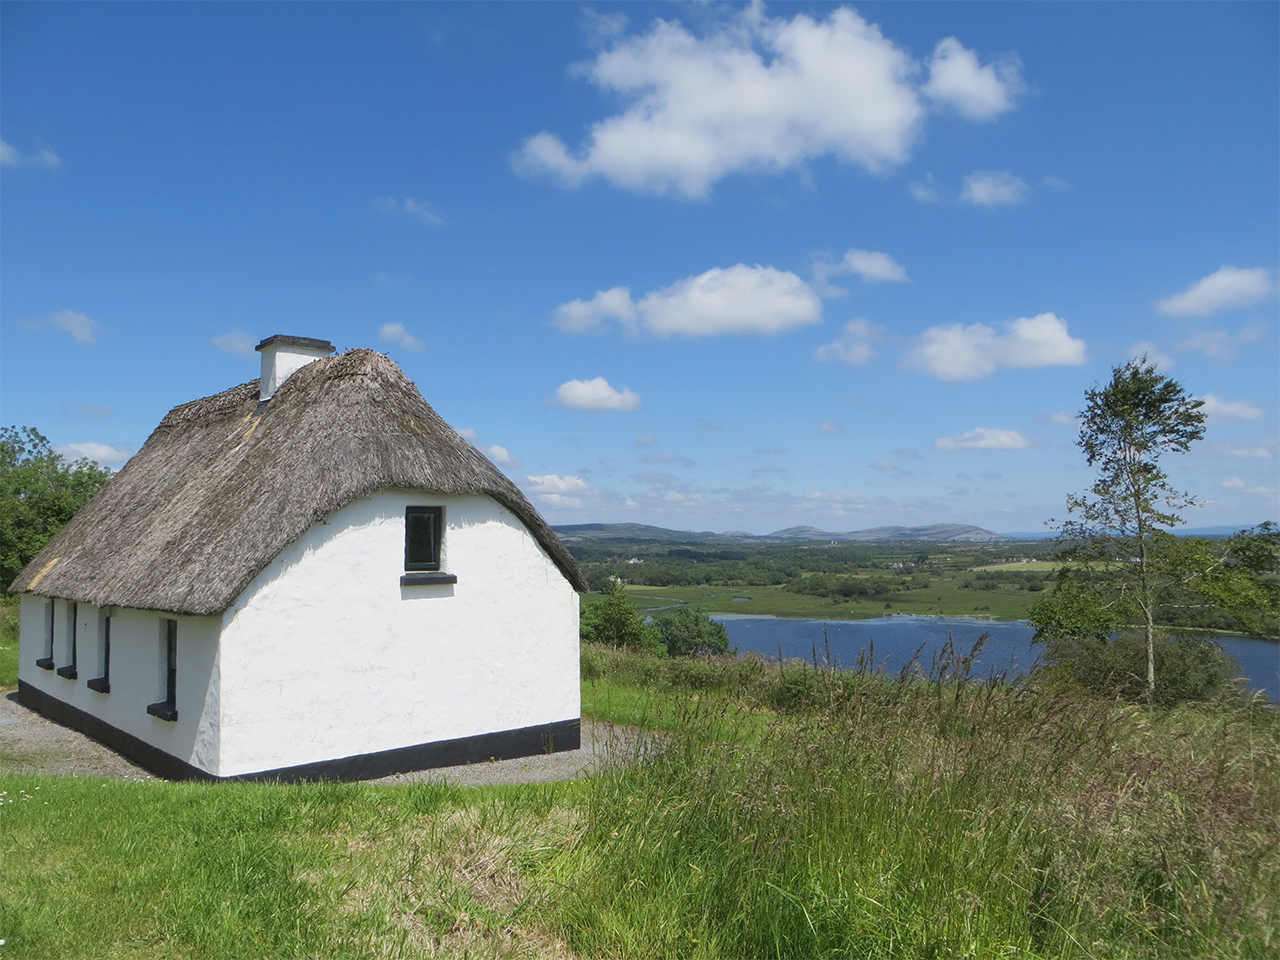 Side of a Thatched Cottage overlook Lake Inchiquin with blue skies